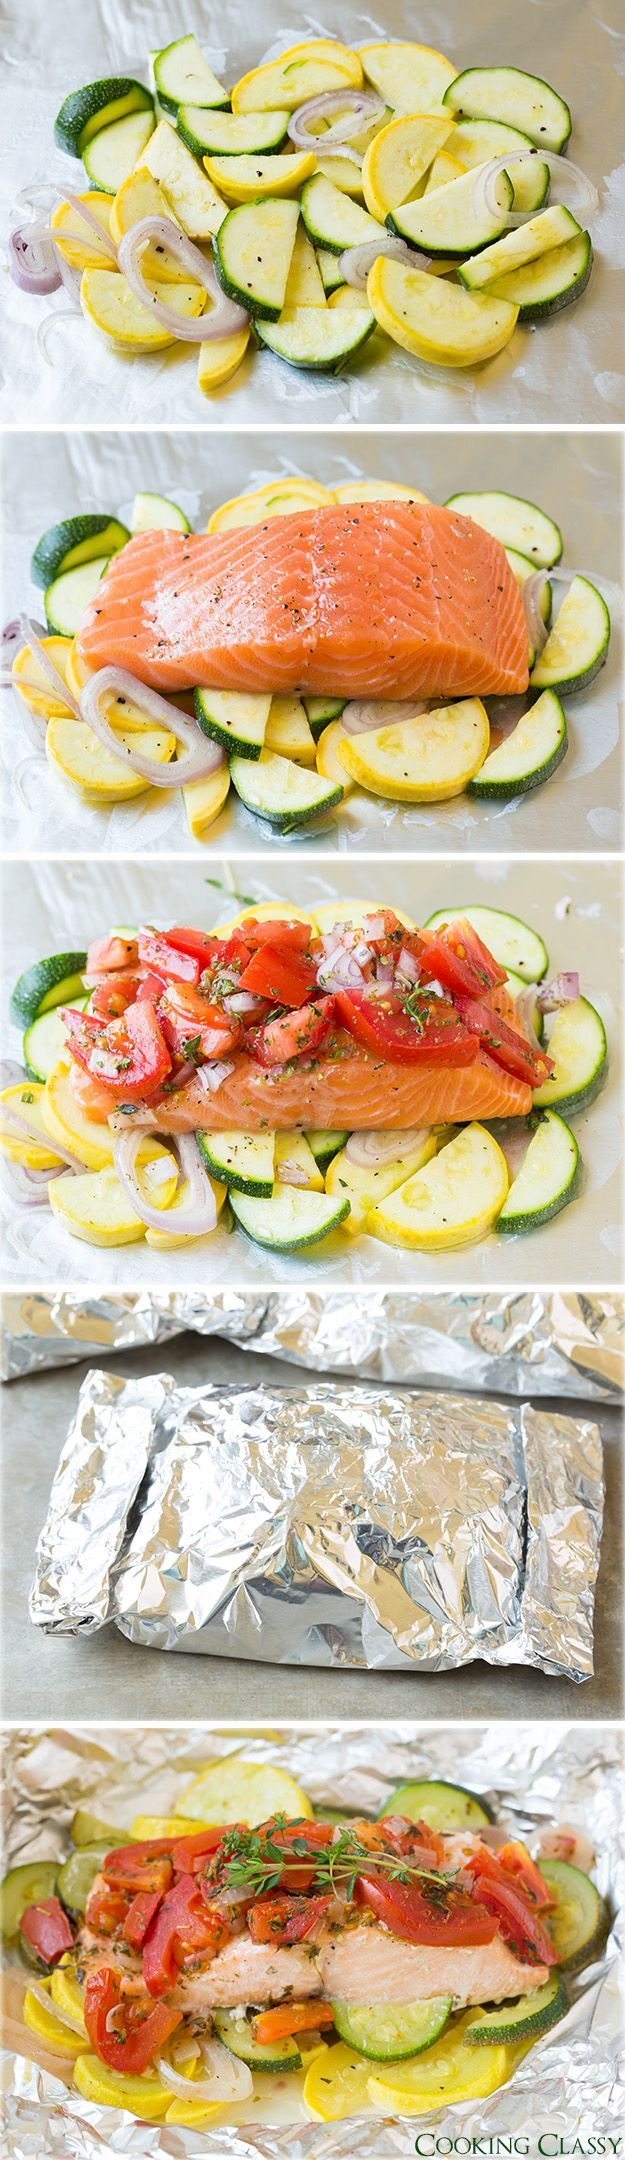 Salmon and Summer Veggies in Foil - so easy to make, perfectly flavorful and clean up is a breeze! | Healthy Recipes | Healthy Dinner | Dinner Recipe | Easy Recipes| Salmon Recipes | Dinner Recipes | Healthy Dinner Recipes | Quick Recipes | Fish Recipes | Veggie Recipes